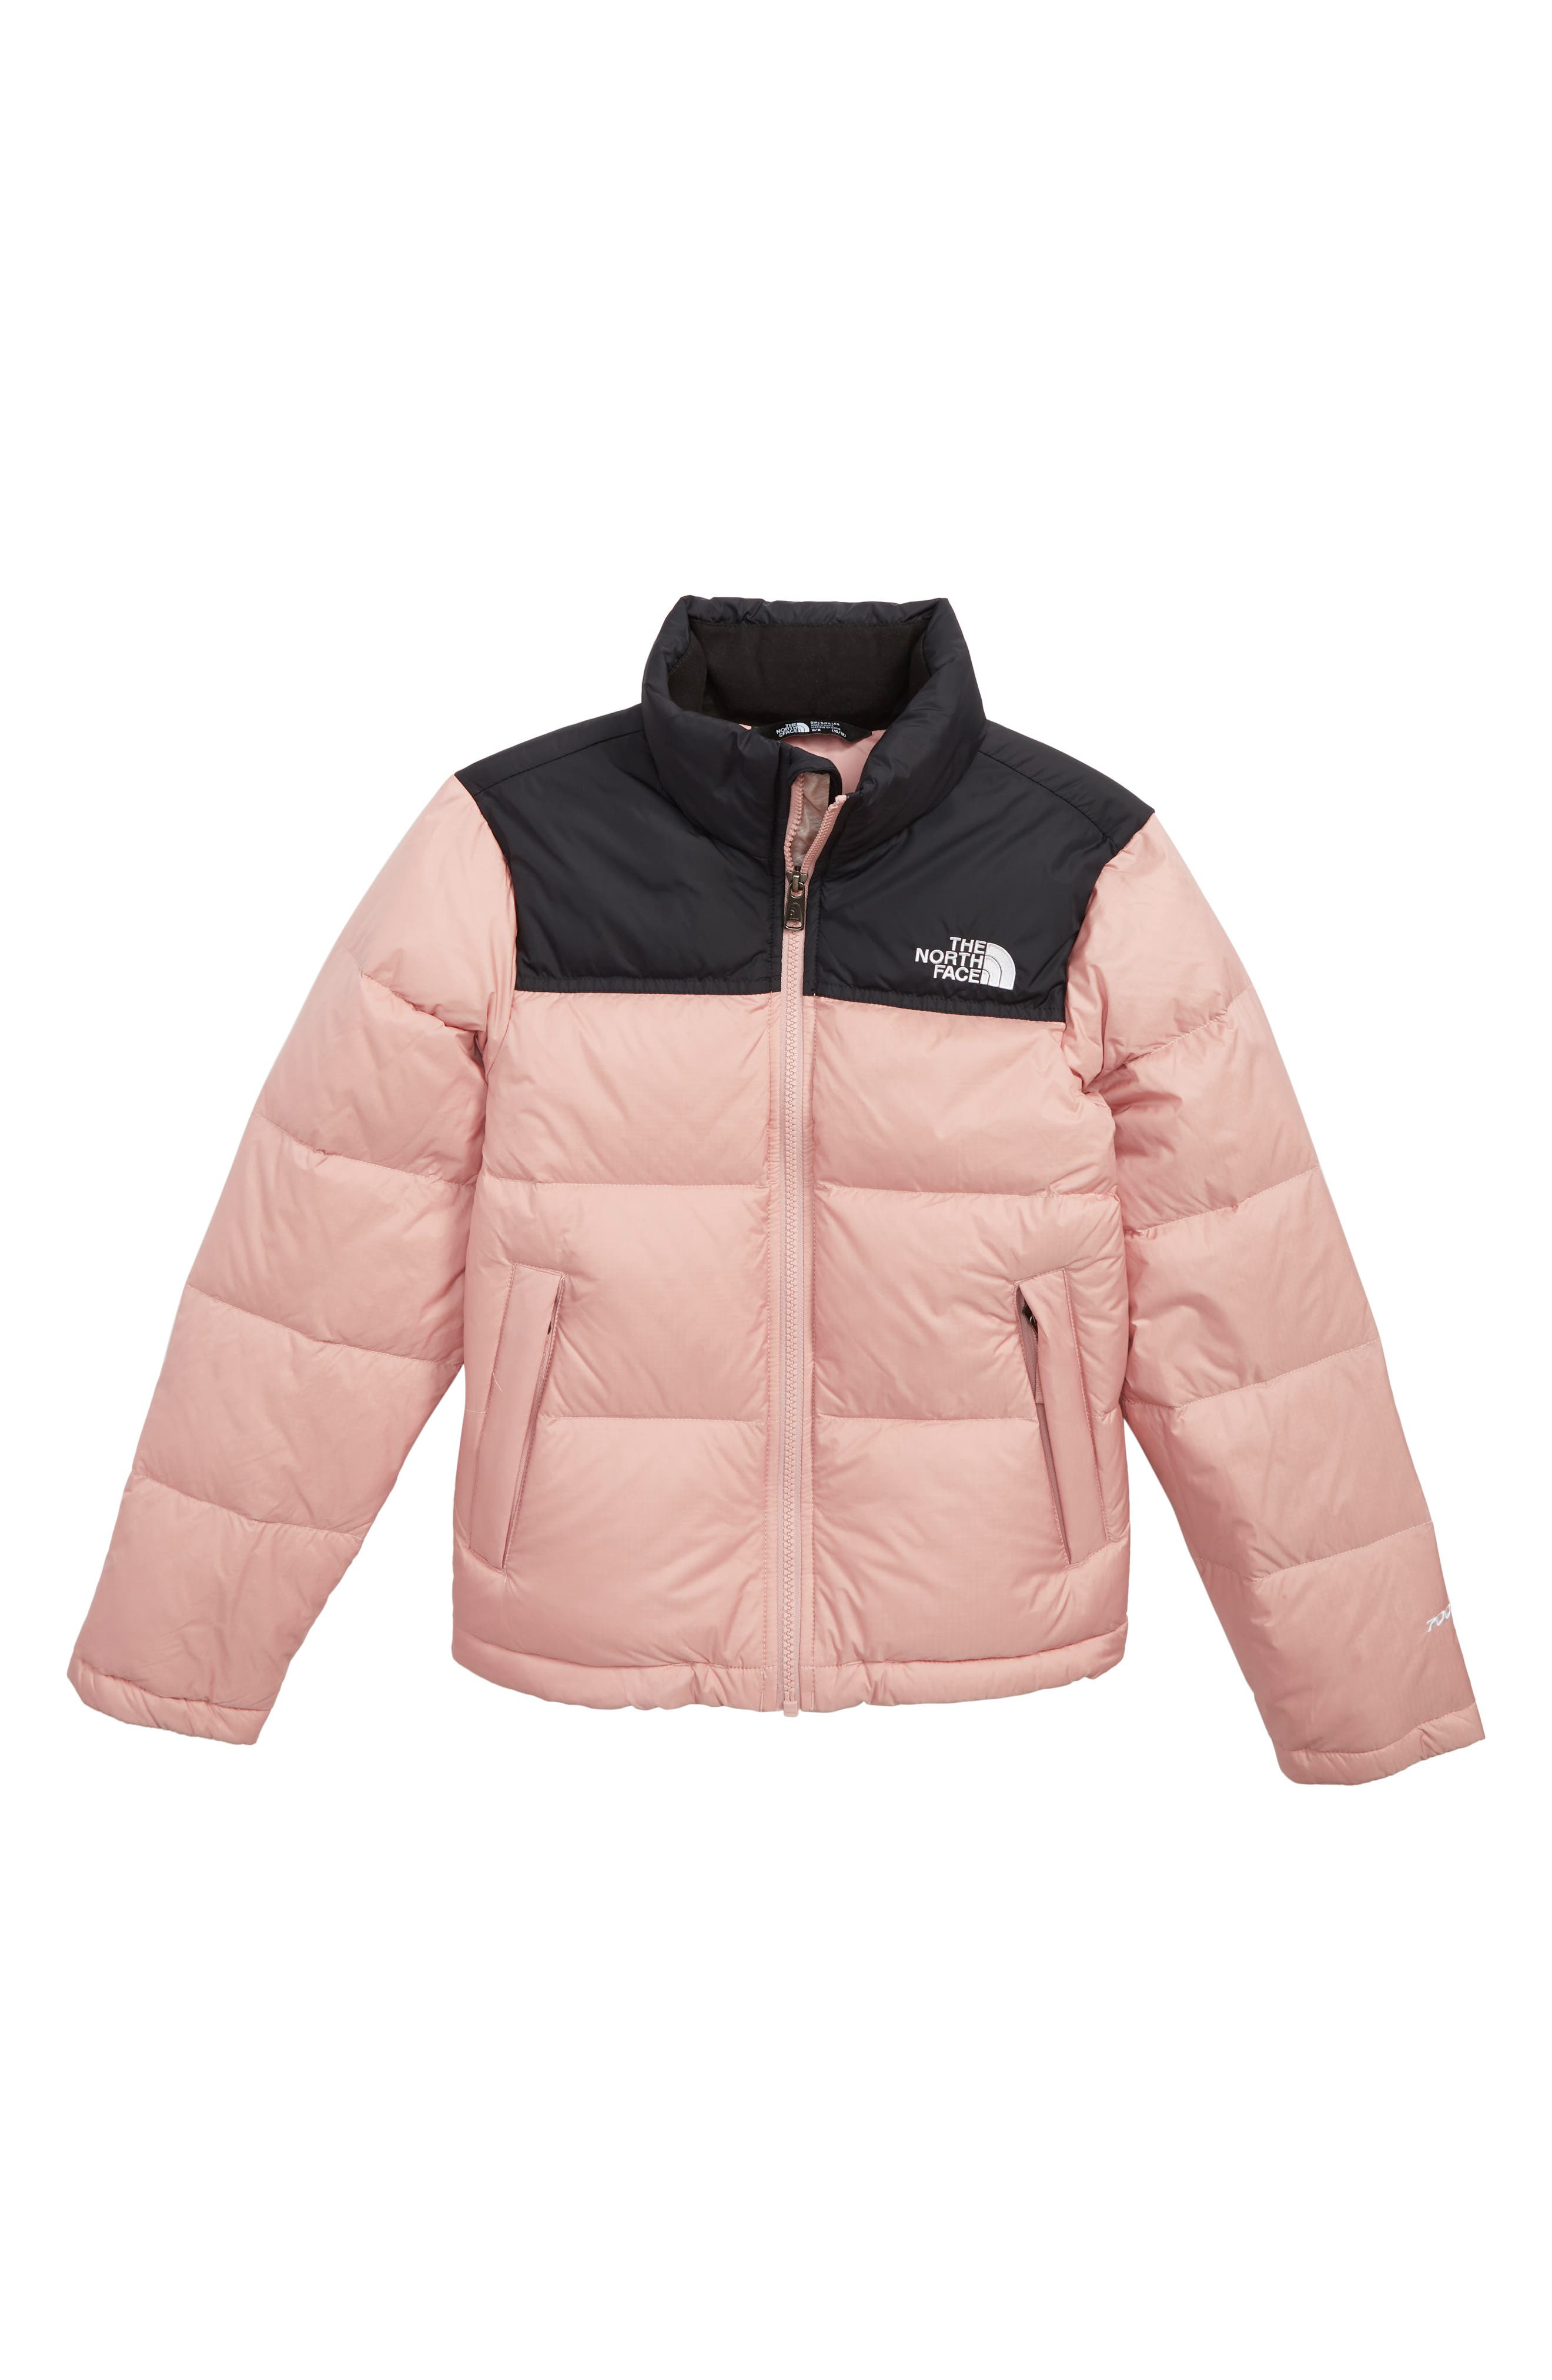 THE NORTH FACE Nuptse 700 Fill Power Down Puffer Jacket, Main, color, MISTY ROSE